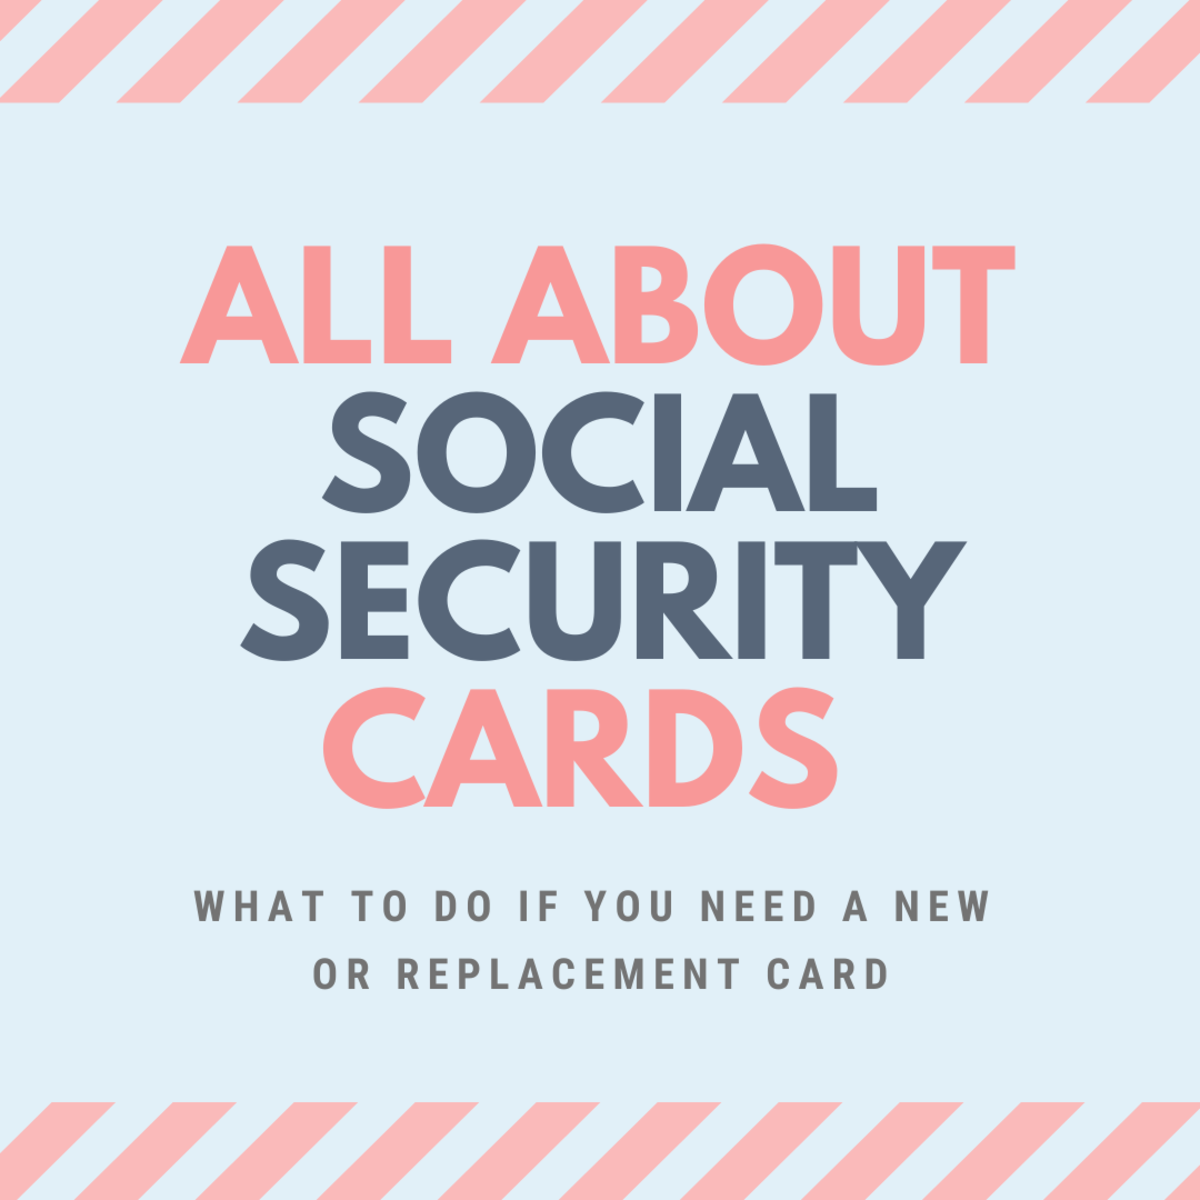 United States Social Security: How To Get A New Or